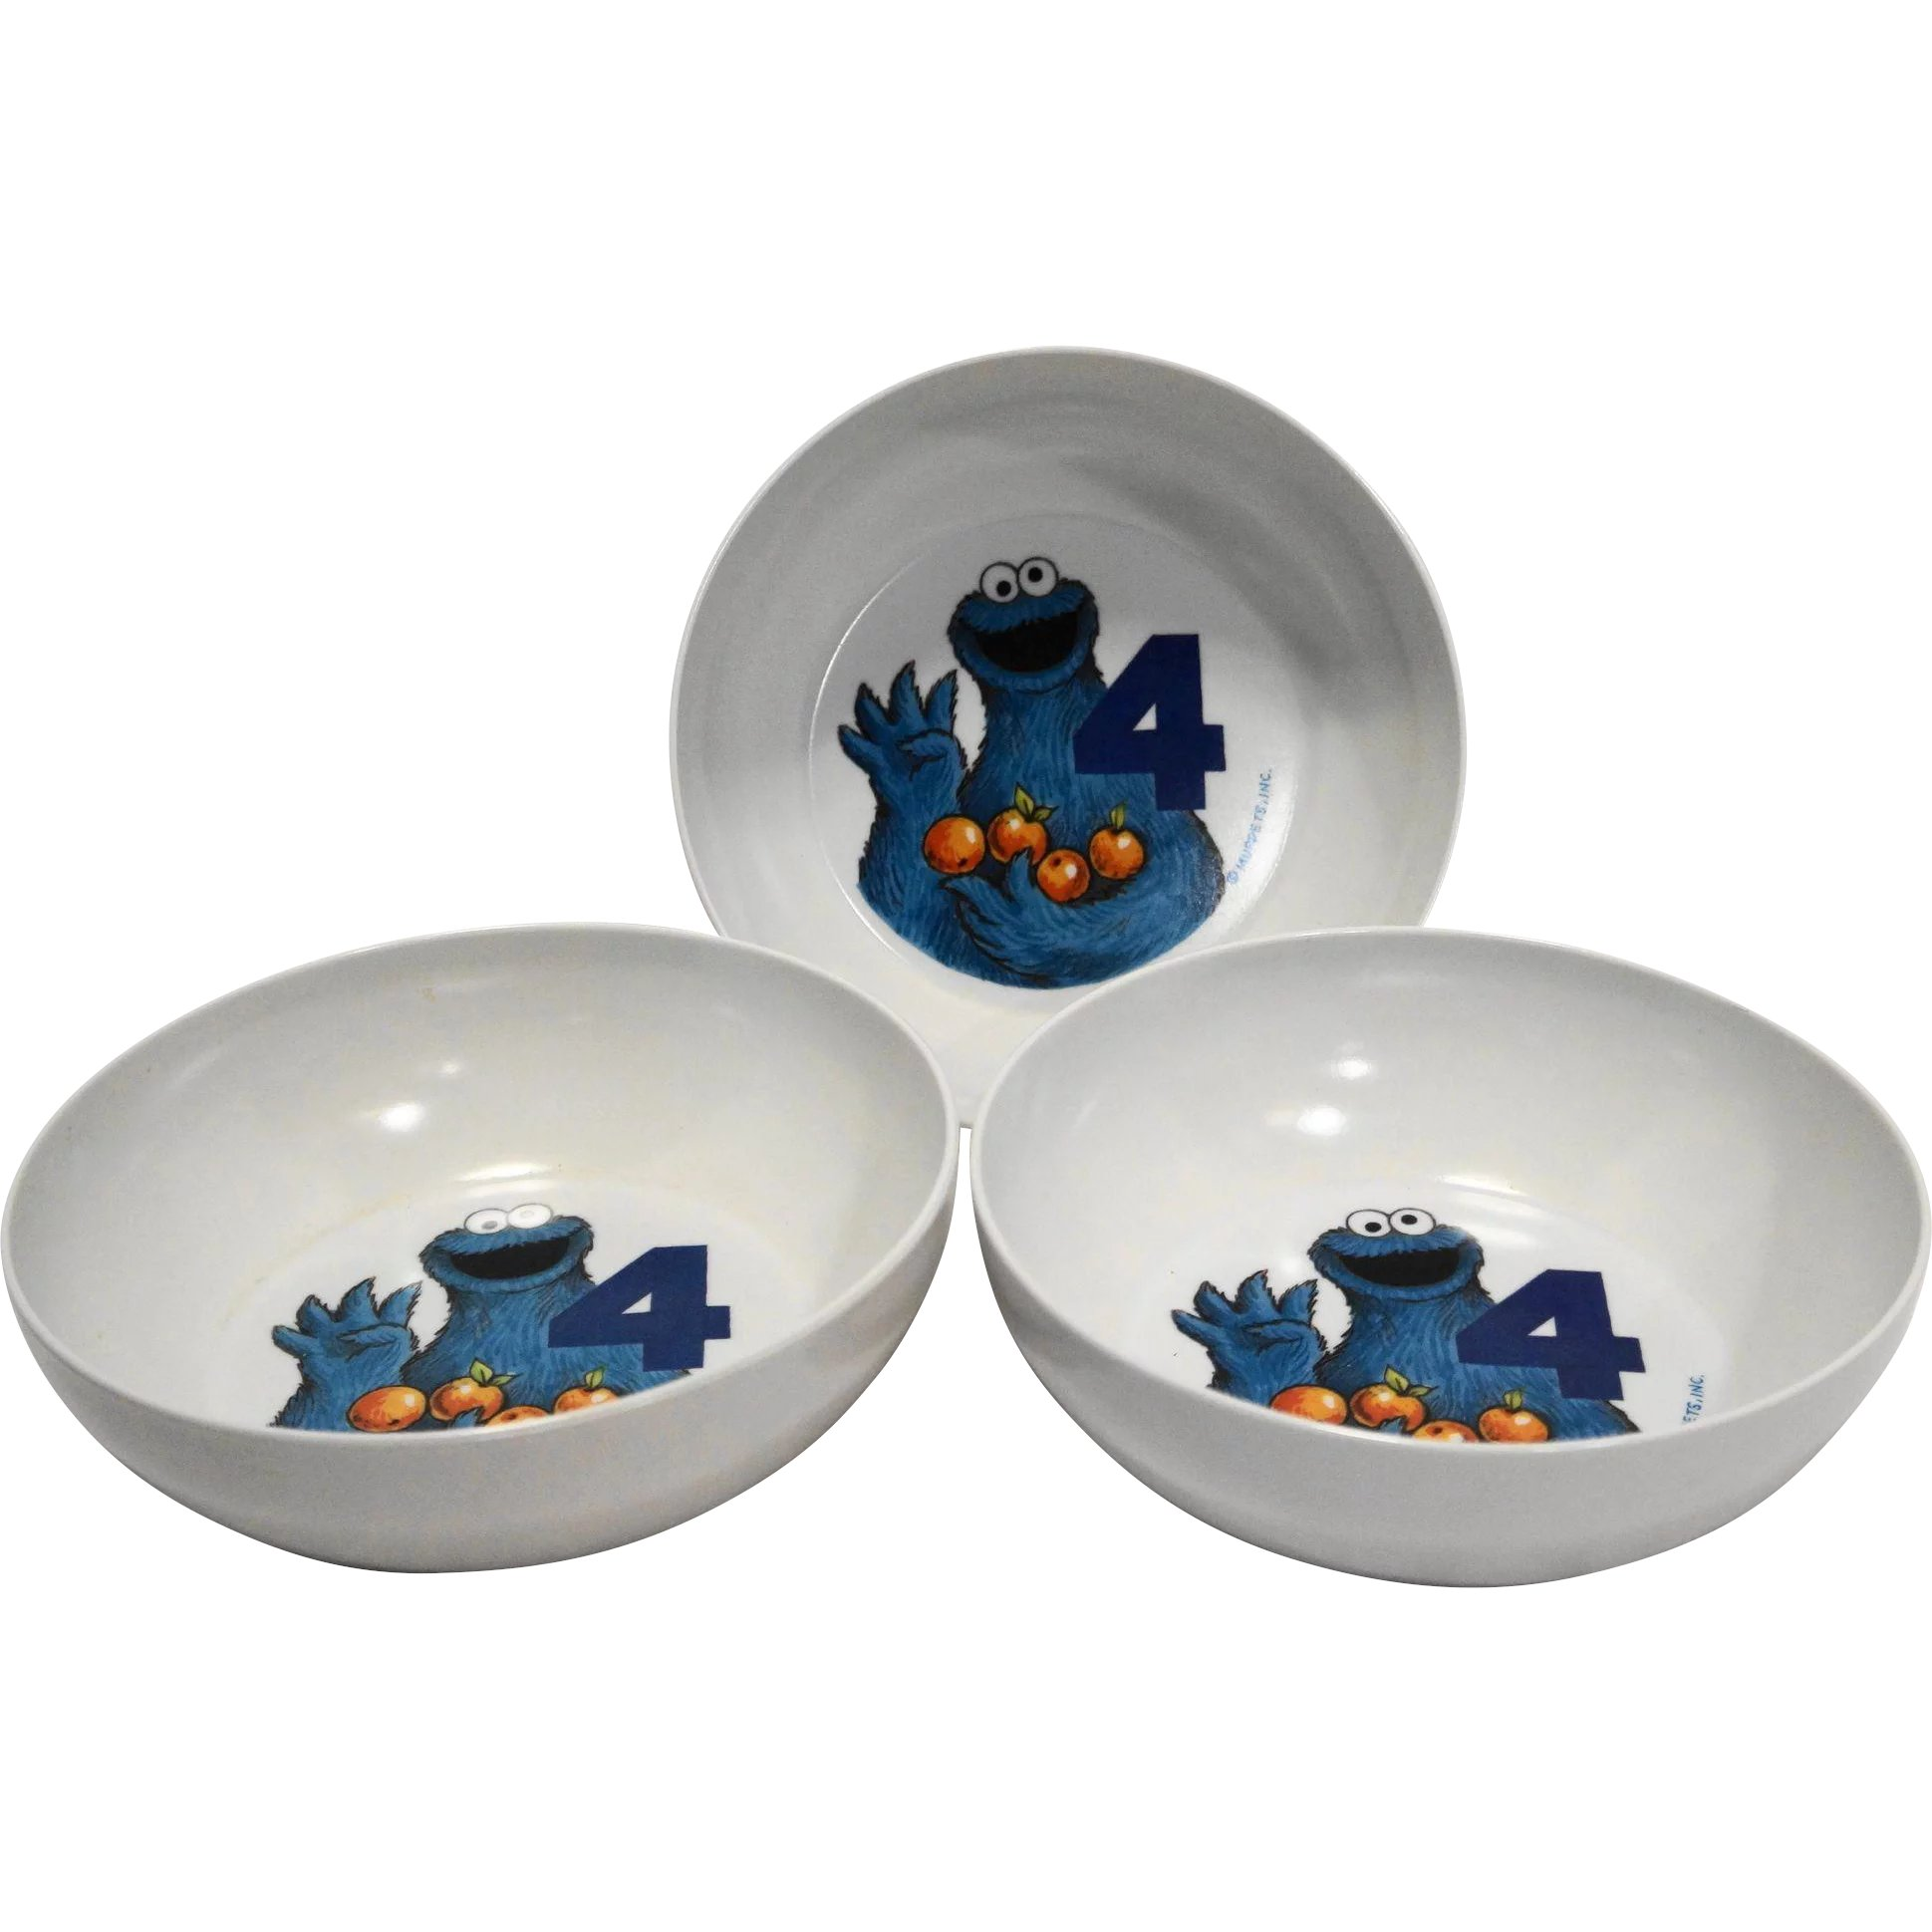 Cookie Monster Cereal Bowls Melmac Set of 3 Sesame Street Muppets  Hoosier Collectibles | Ruby Lane  sc 1 st  Ruby Lane & Cookie Monster Cereal Bowls Melmac Set of 3 Sesame Street Muppets ...